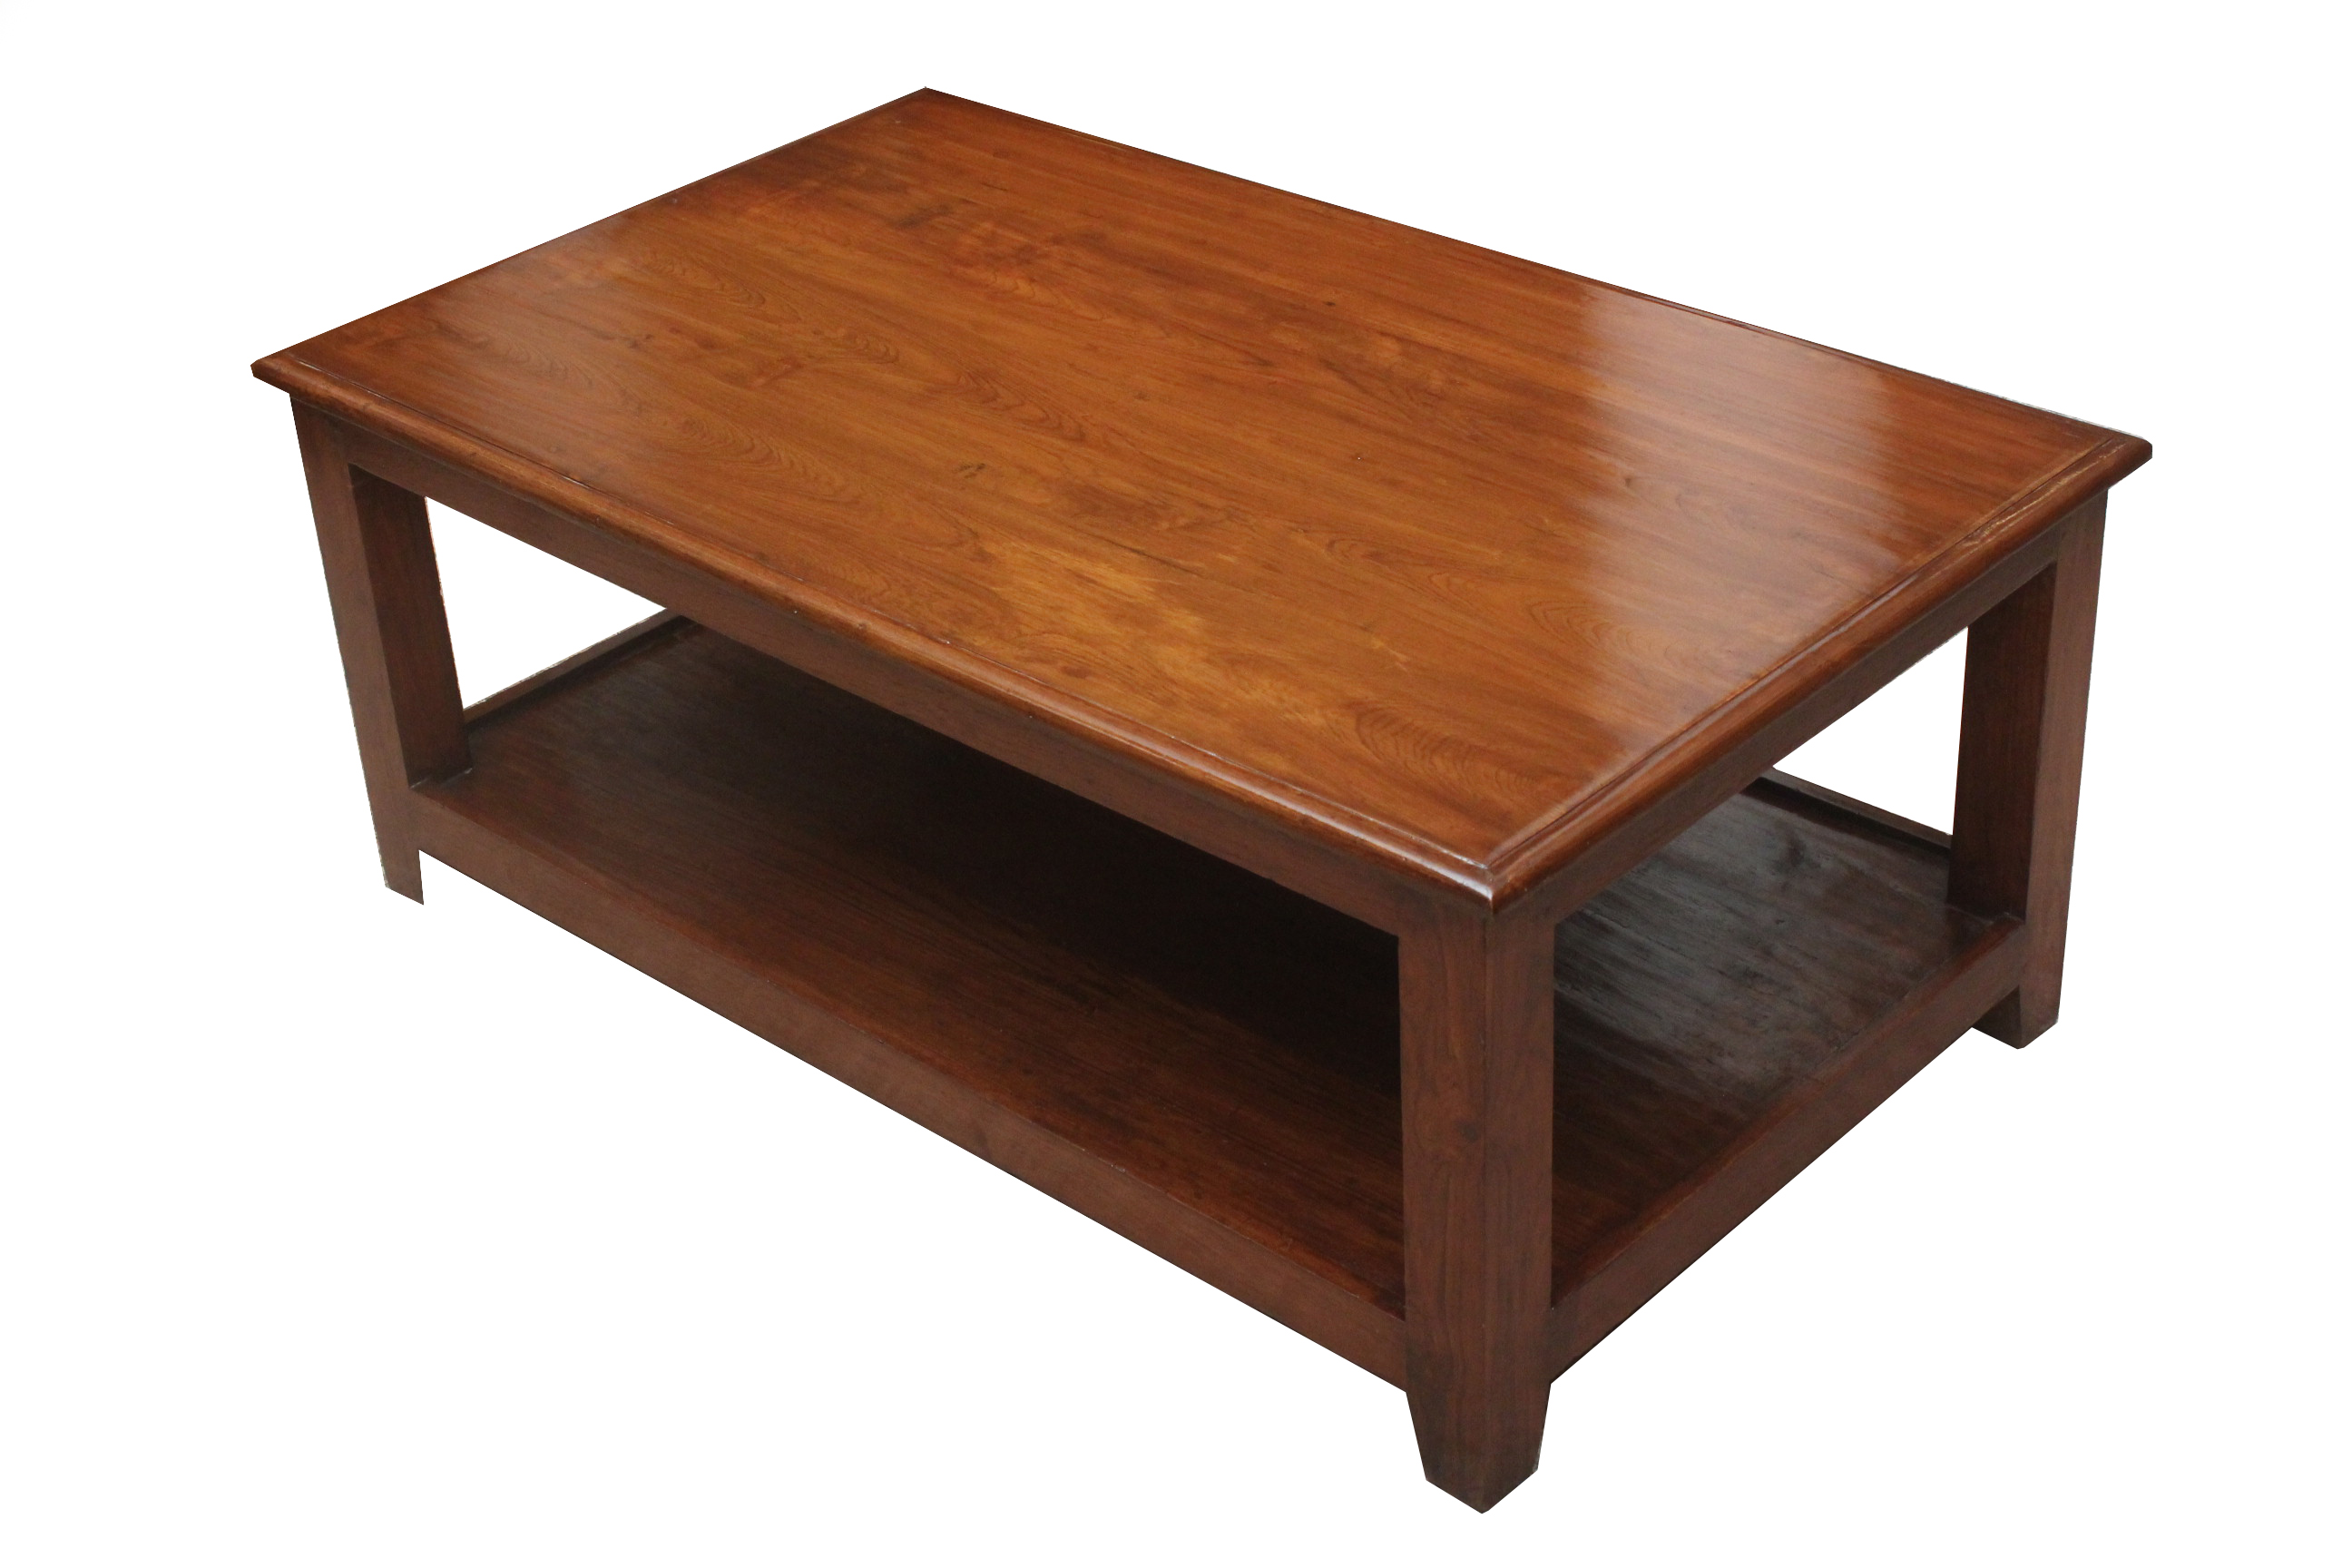 Teakwood Coffee Table CF 1 Details